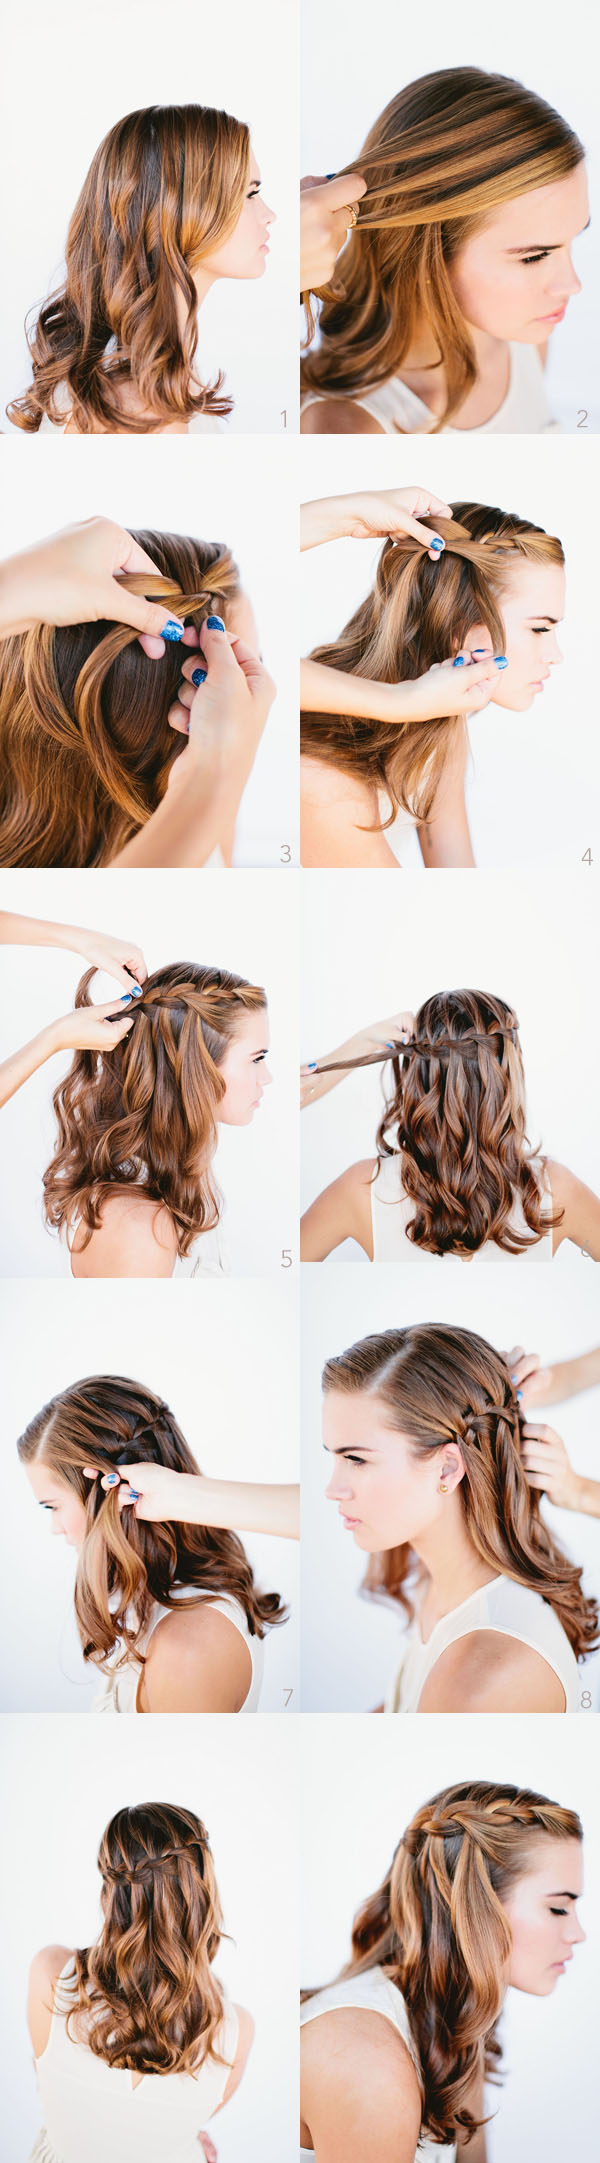 How to make a beautiful waterfall braid waterfall braid tutorials waterfall braid for long hair ccuart Image collections